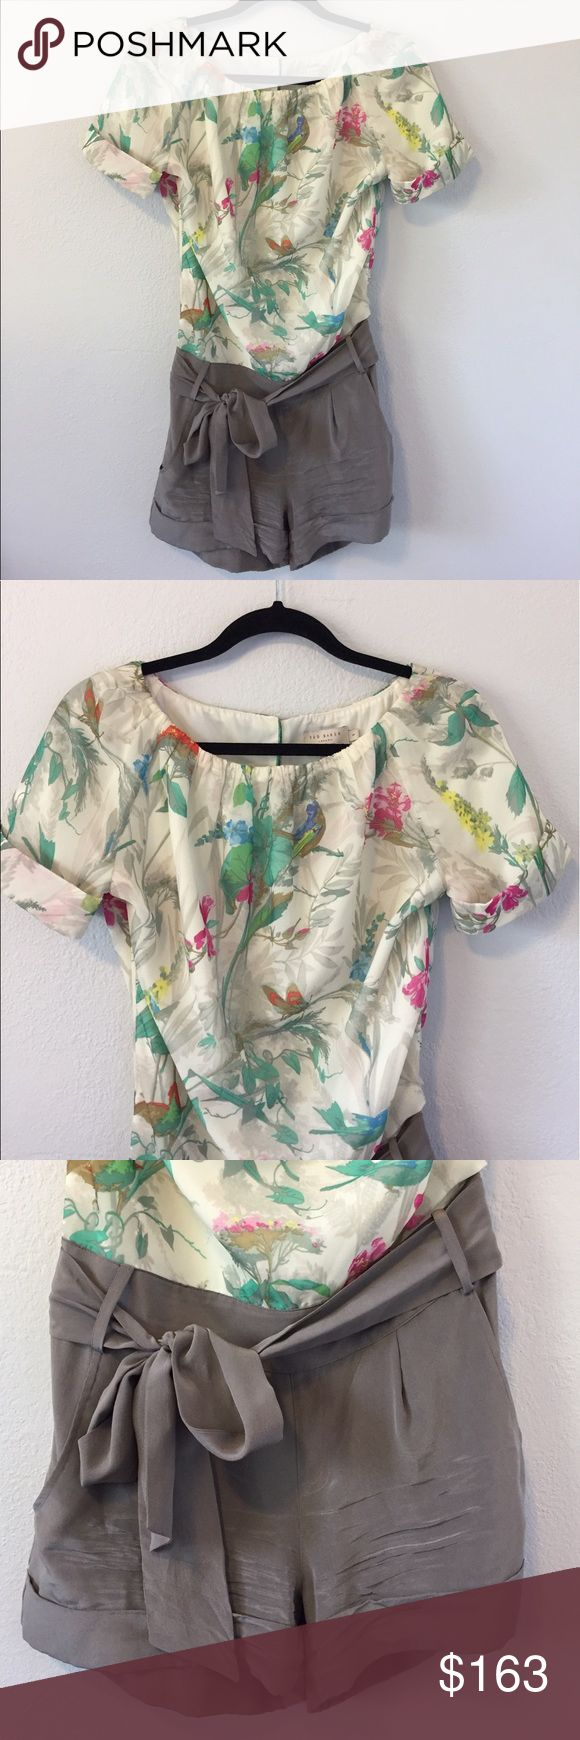 """Ted Baker Silk Nature Print Romper GORGEOUS Ted Baker Nature Print Romper. The top is Cream with Multicolor Nature Print of flowers, foliage, butterflies & birds. The shorts are a really pretty taupe/gray color & have pockets. Invisible Zipper & removable waist tie. Top is 100% Polyester & the shorts are 100% Silk. Worn once, & in excellent condition! The only sign of wear is the creasing in the silk shorts. Measurements laying flat: pit to pit: 20"""", waist side to side: 15.5"""", pit to shorts…"""